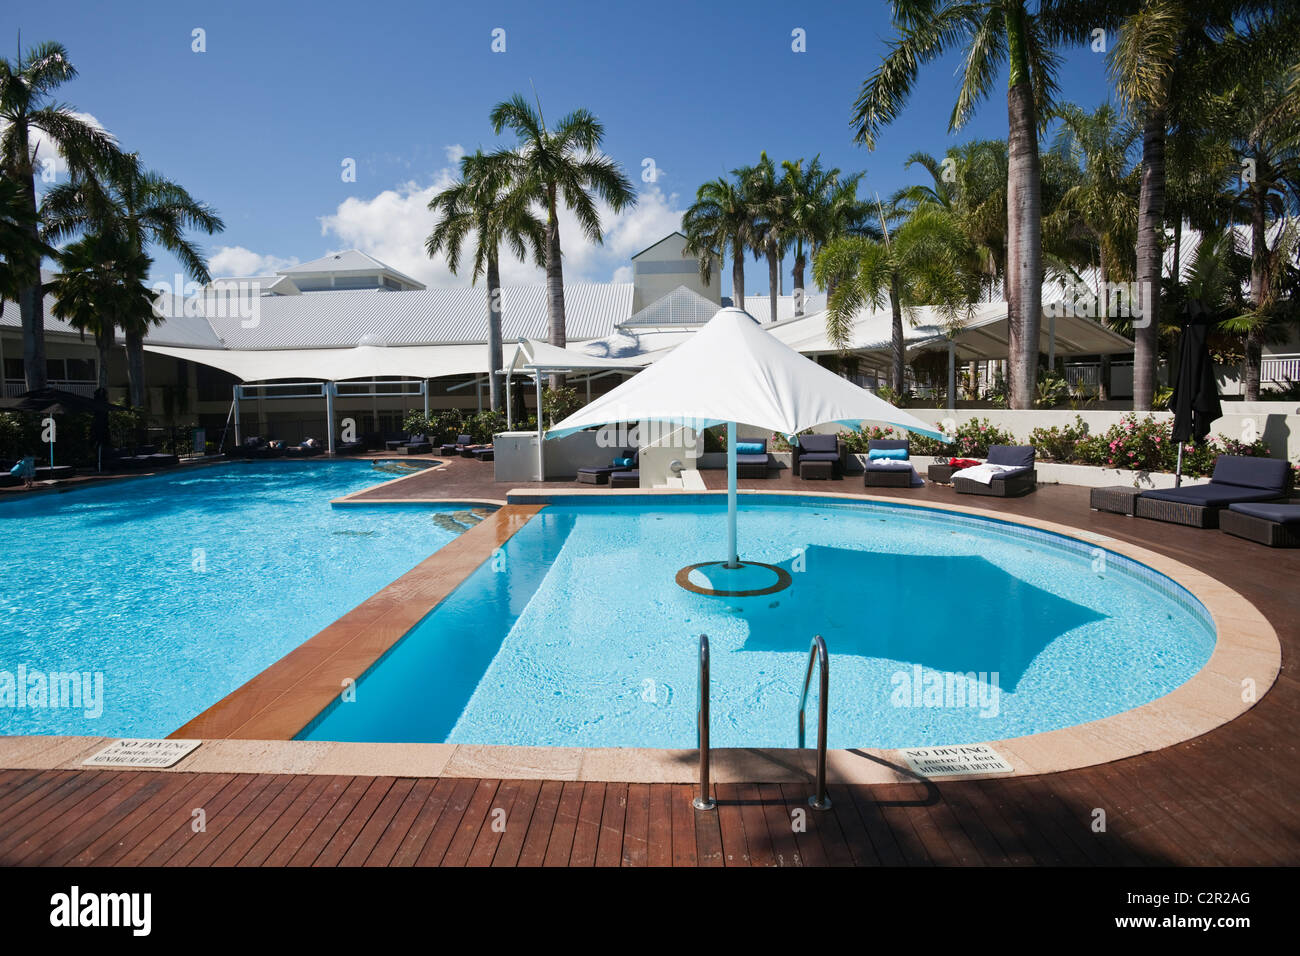 Swimming Pool At Shangri La Hotel The Pier Cairns Queensland Stock Photo Royalty Free Image